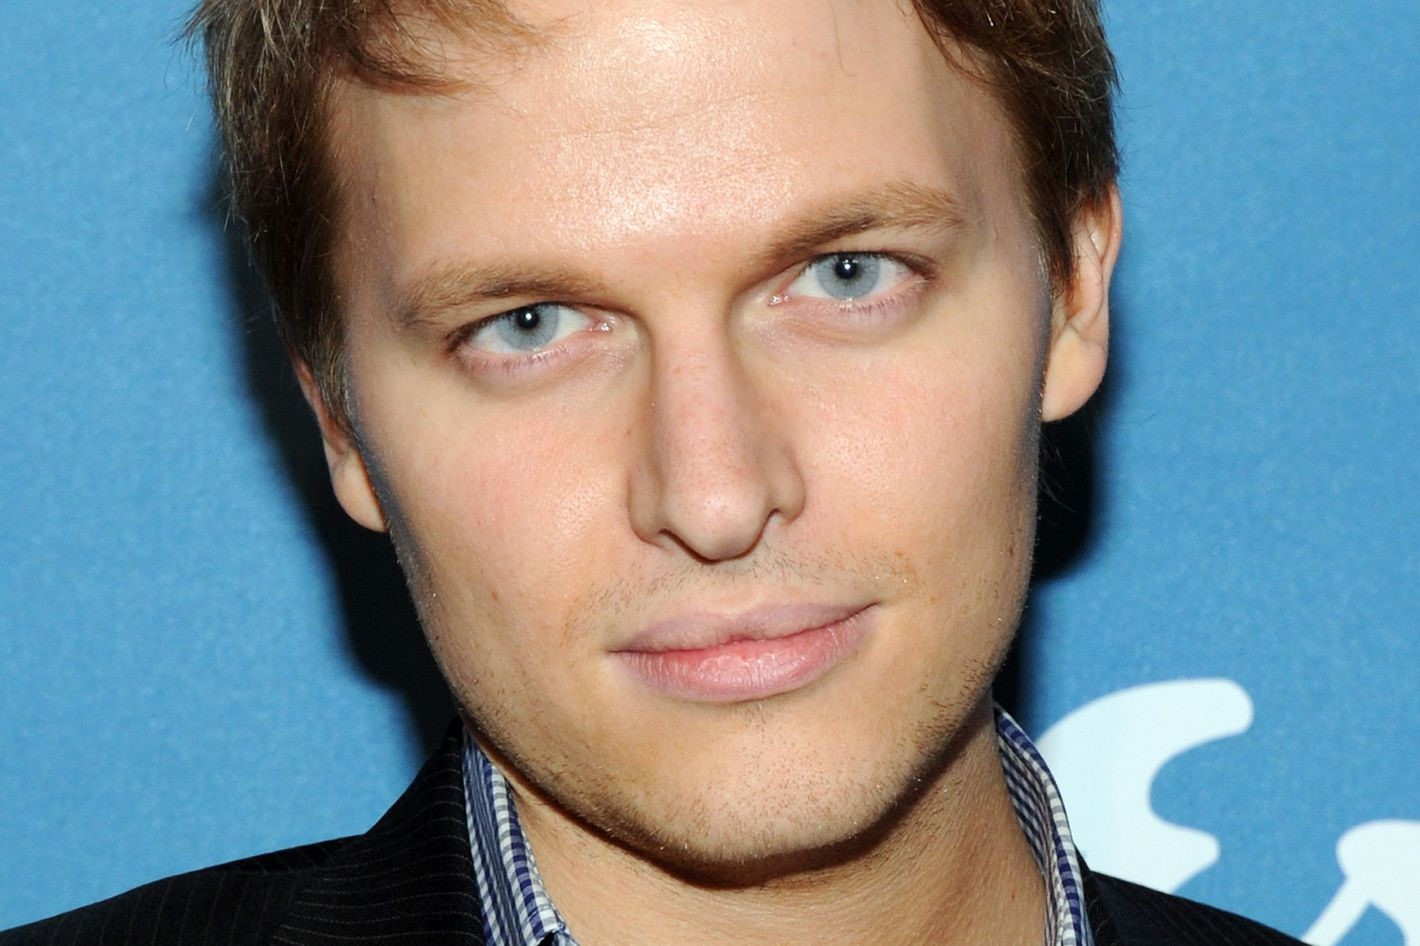 Ronan Farrow attends the Esquire 80th anniversary and Esquire Network launch celebration at Highline Stages on September 17, 2013 in New York City.